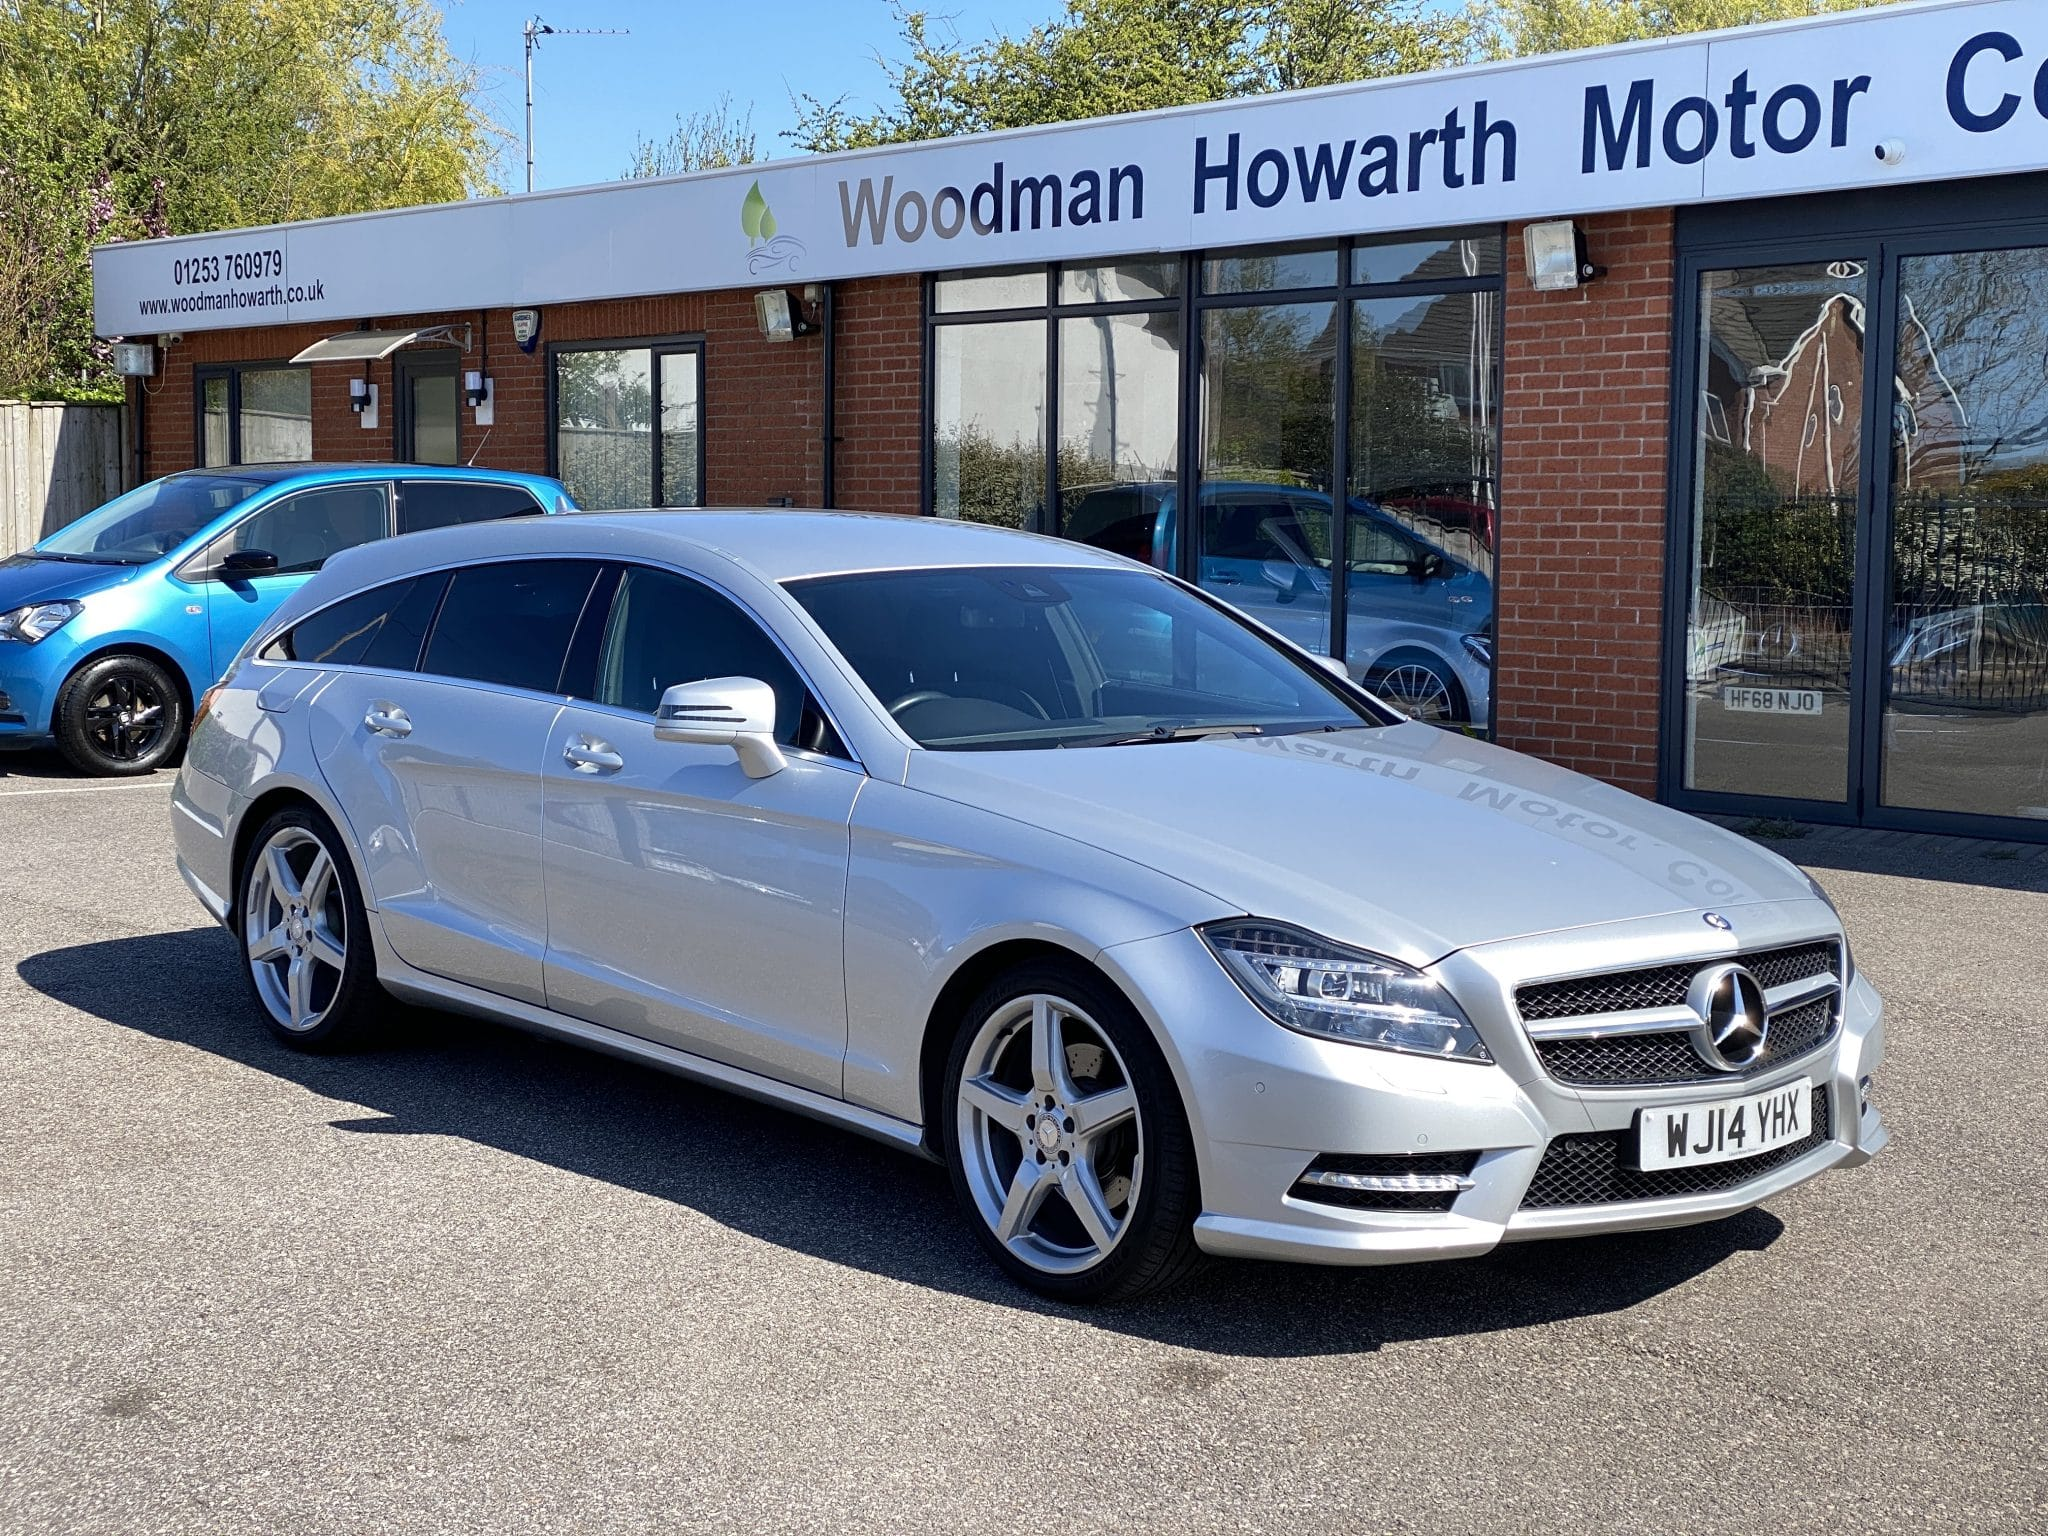 2014 14 MERCEDES BENZ CLS250 2.1CDI AMG SPORT SHOOTING BRAKE AUTO 1 Previous Owner FSH Only 50K Mls